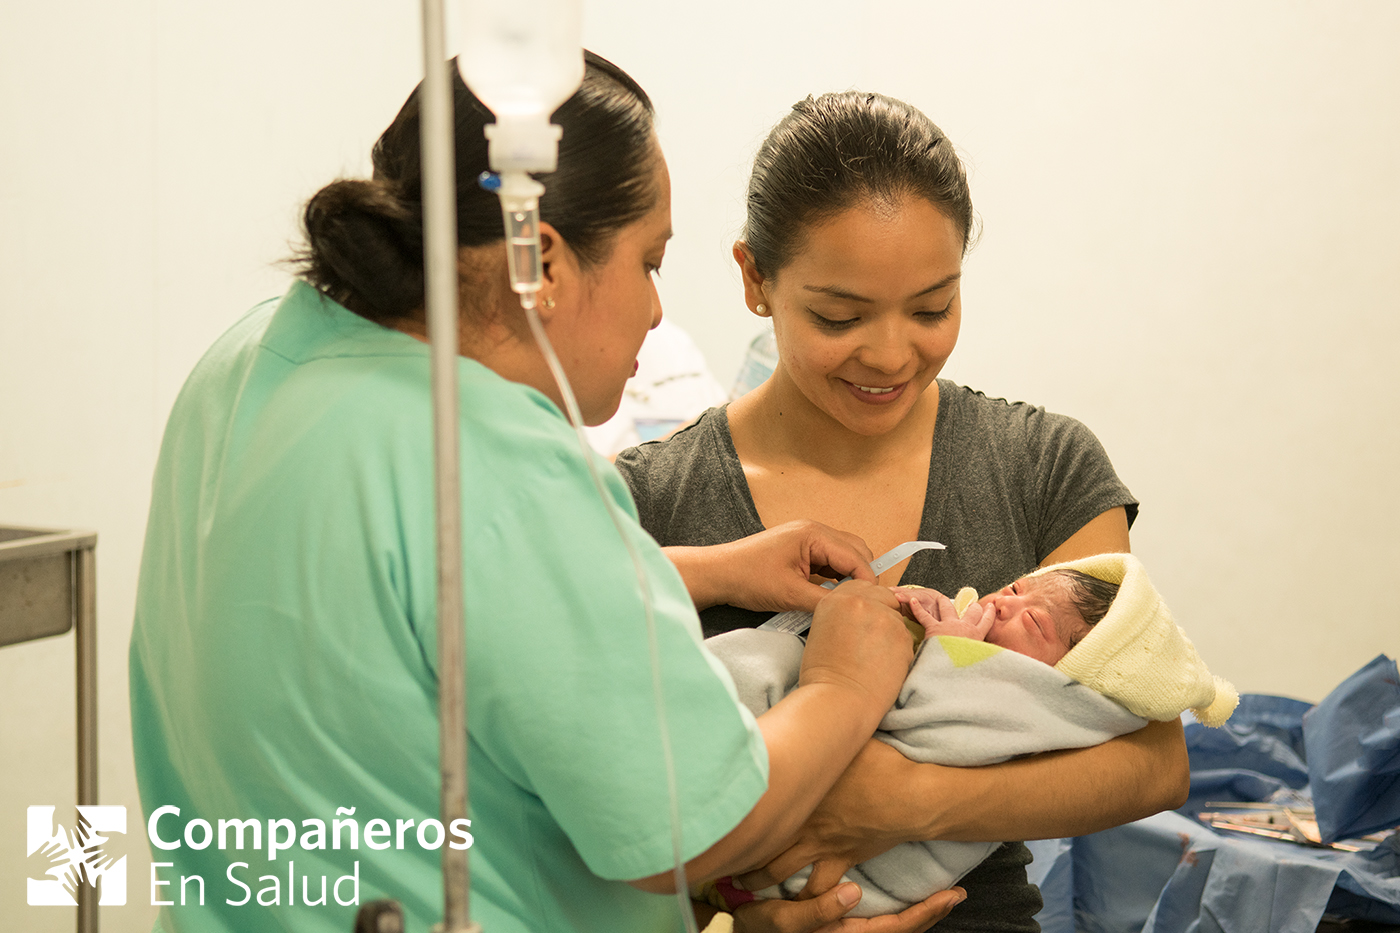 Photo: Dr. Mariana Montaño (right) with newborn baby Ángel and nurse Maria Yaneth López Morales (left), one of the public health system staff who are our colleagues and allies at the community hospital in Jaltenango de la Paz.